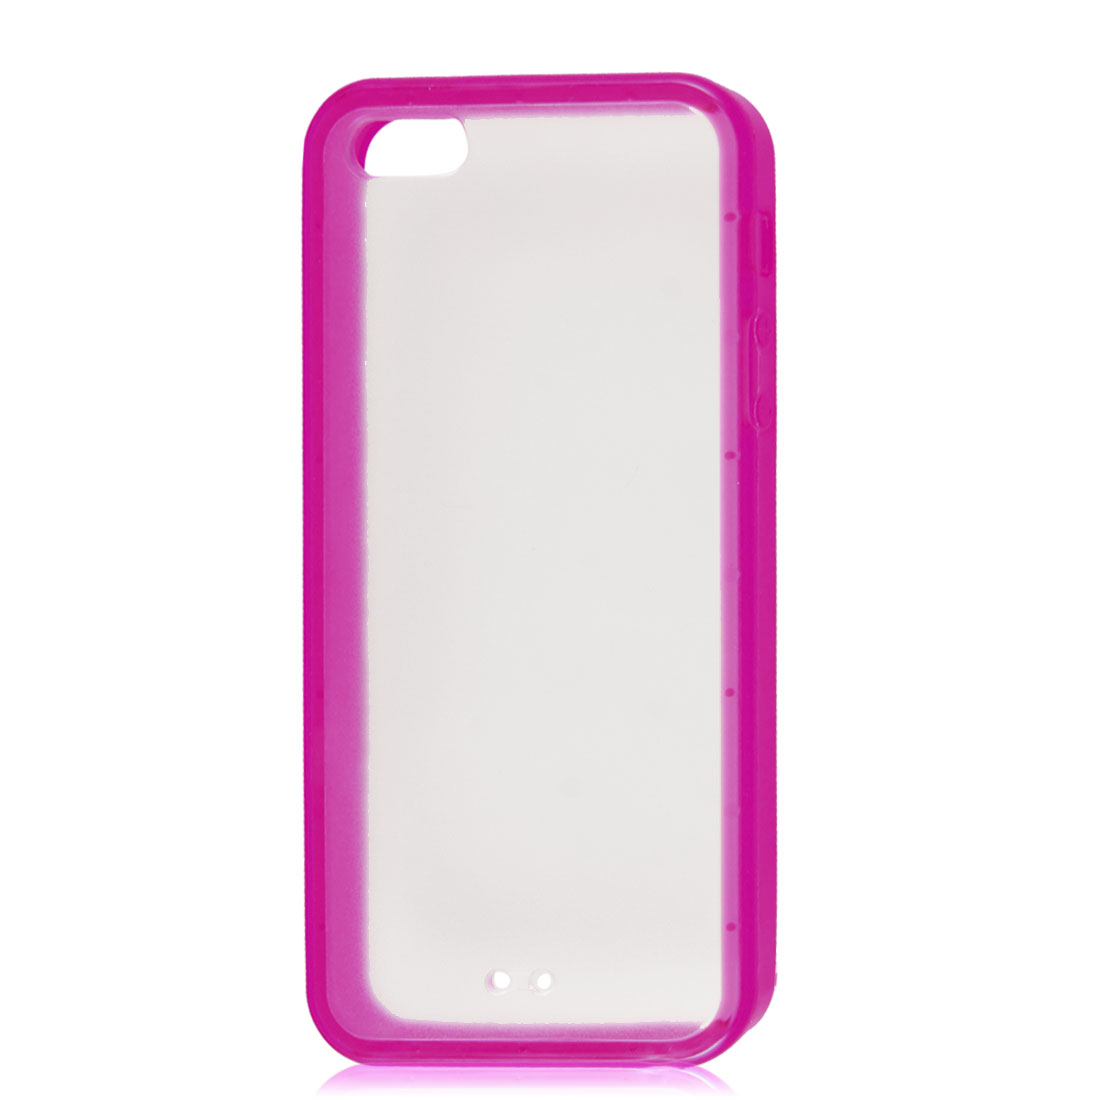 Fuchsia Soft Trim Clear Hard Back Plastic Protective Case Cover for iPhone 5 5G